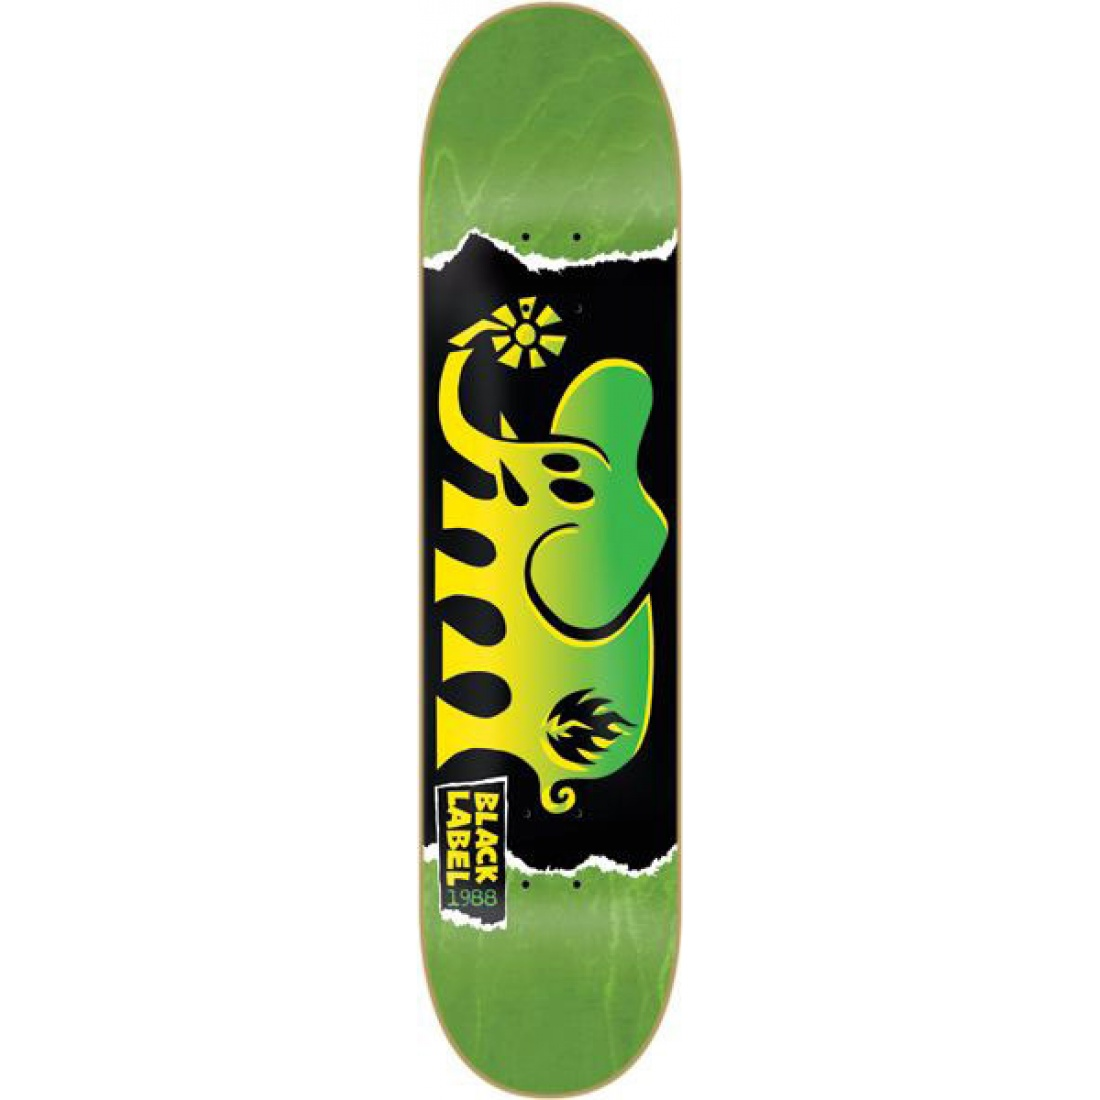 BL-Ripped Elephant Fade 8.0 Deck